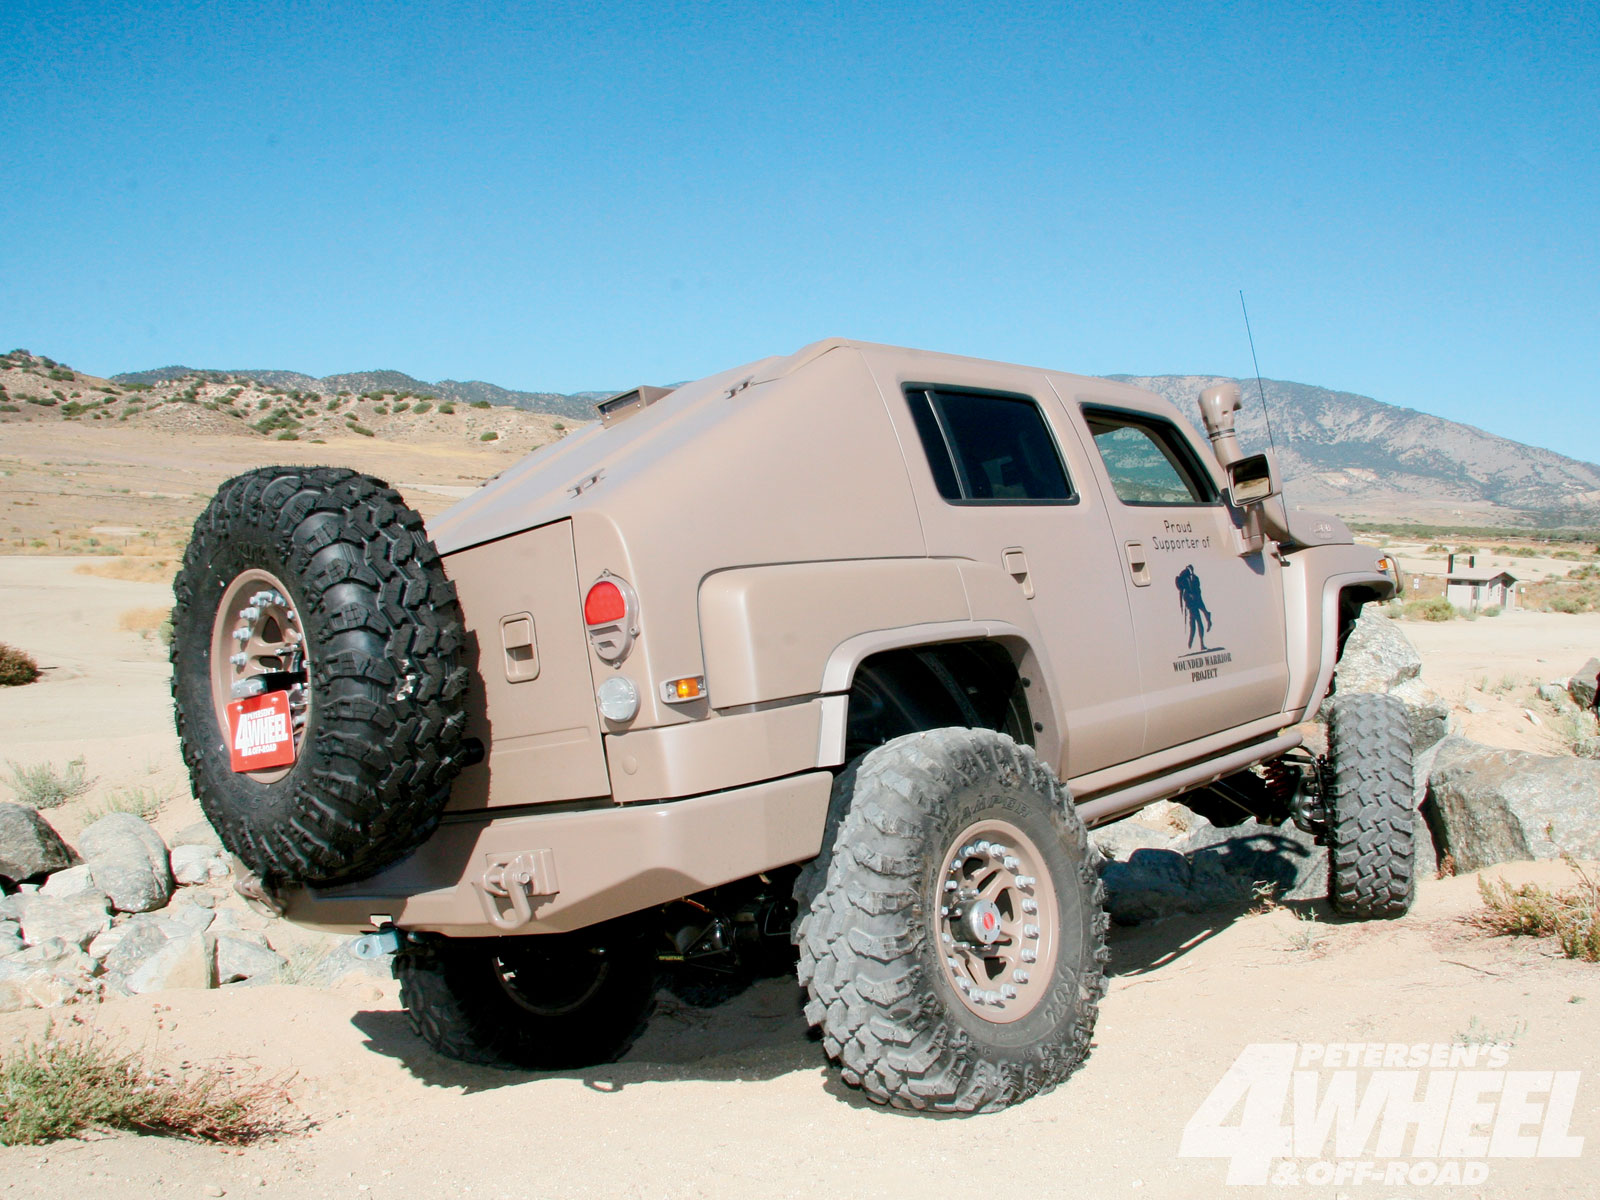 The slant-back top of the H3 is a handcrafted addition made of sheetmetal that's been seamlessly molded to the body. American Hot Rod even took cues from the military HMMWV taillights to try and capture the utilitarian nature of the original H1.